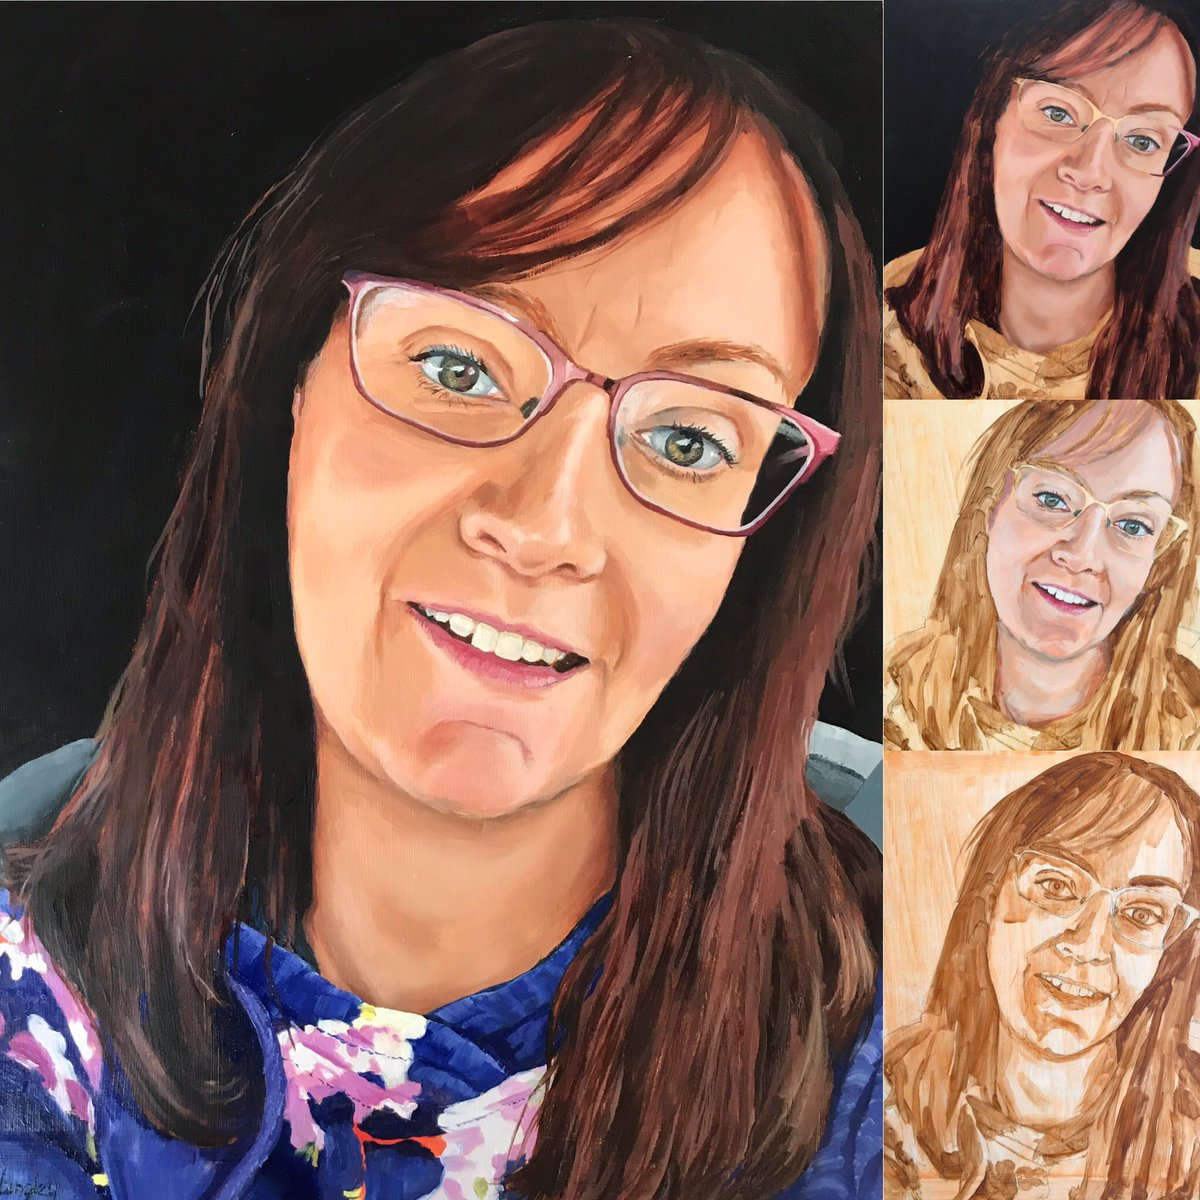 Diane, is a practice nurse from Shropshire and is my 6th #portraitsforhnsheroes she works in an assessment hub caring for patients with Covid-19 symptoms with the aim of keeping these patients out of #hospital #oilpainting #nhs #shropshire #portraitpainting #nursingpic.twitter.com/iXgFAtisWN